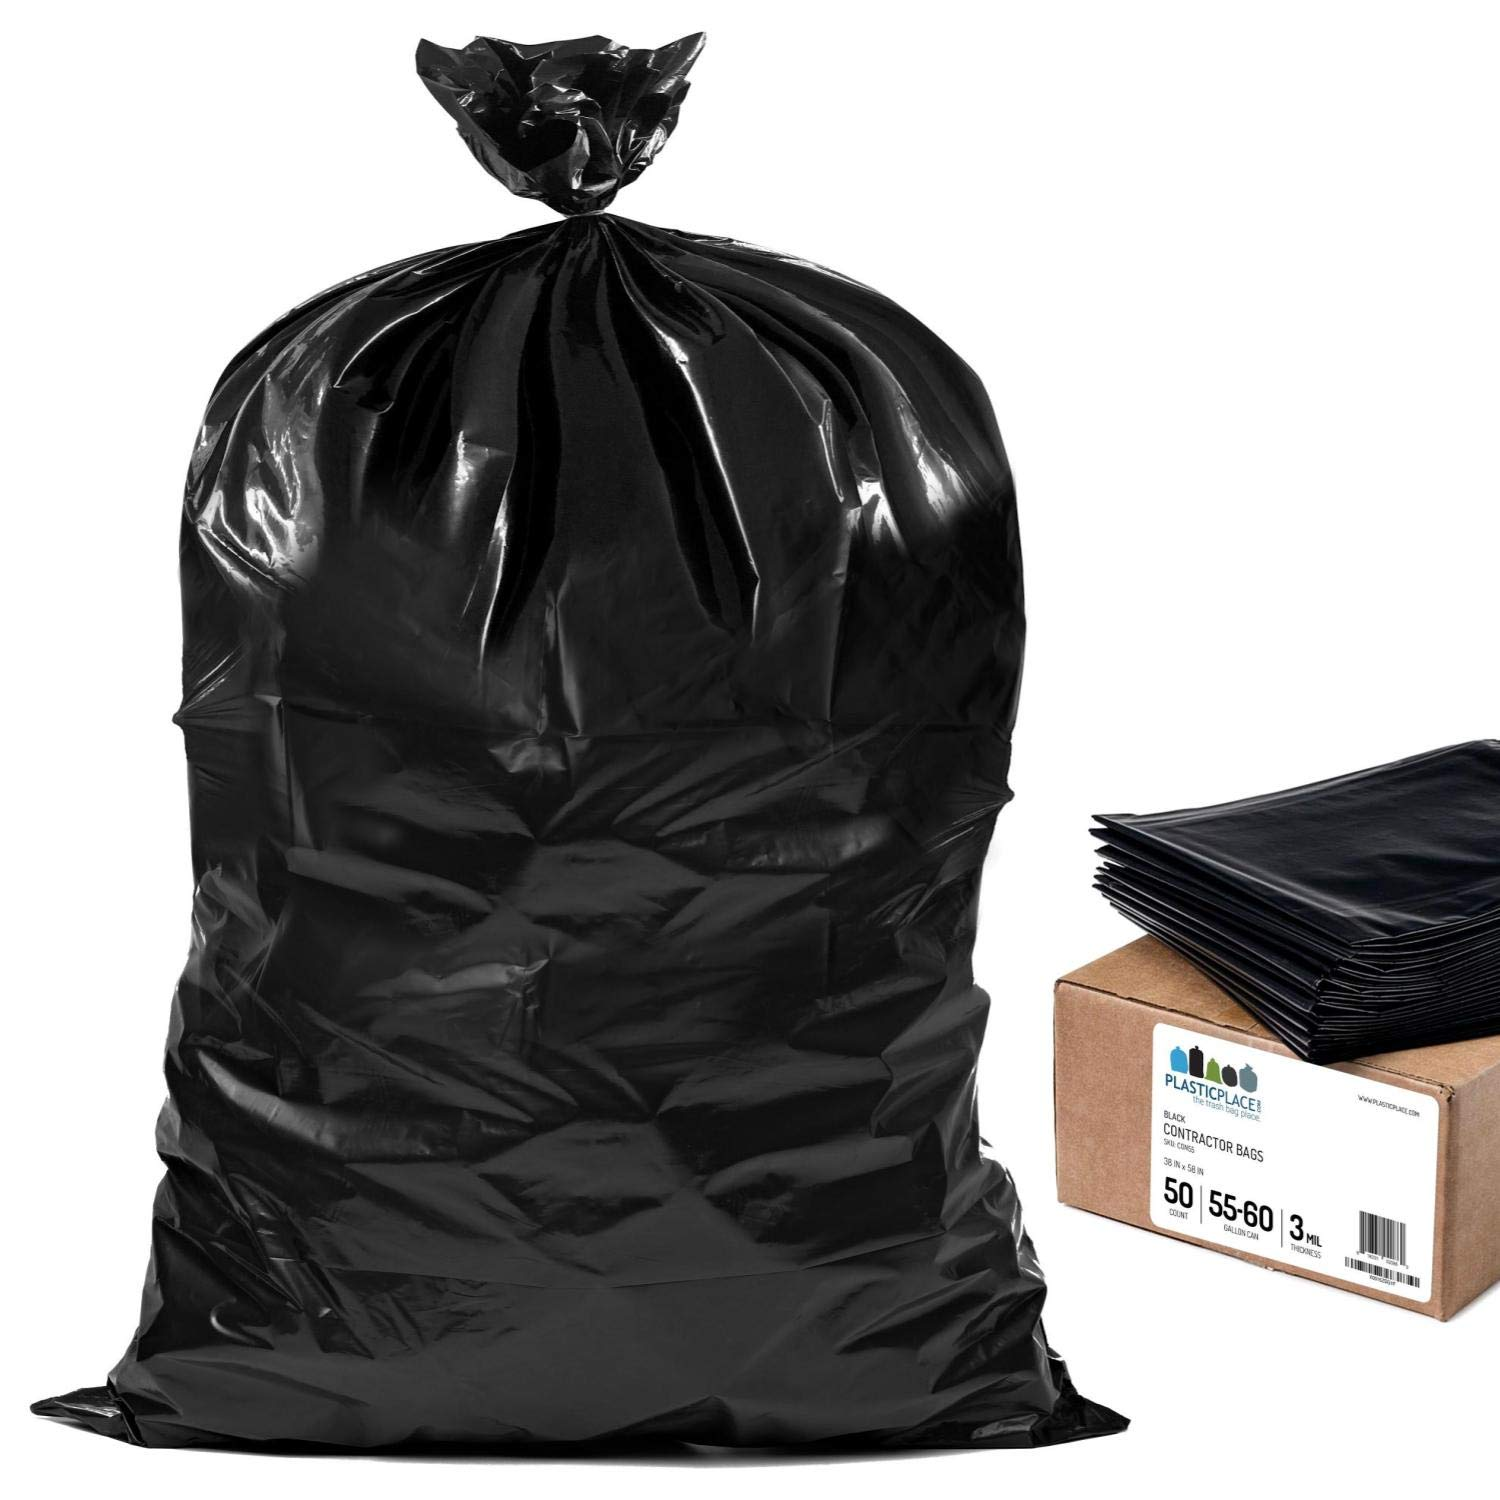 Plasticplace Contractor Trash Bags 55-60 Gallon │ 3.0 Mil │ Black Heavy Duty Garbage Bag │ 38'' x 58'' (50 Count)